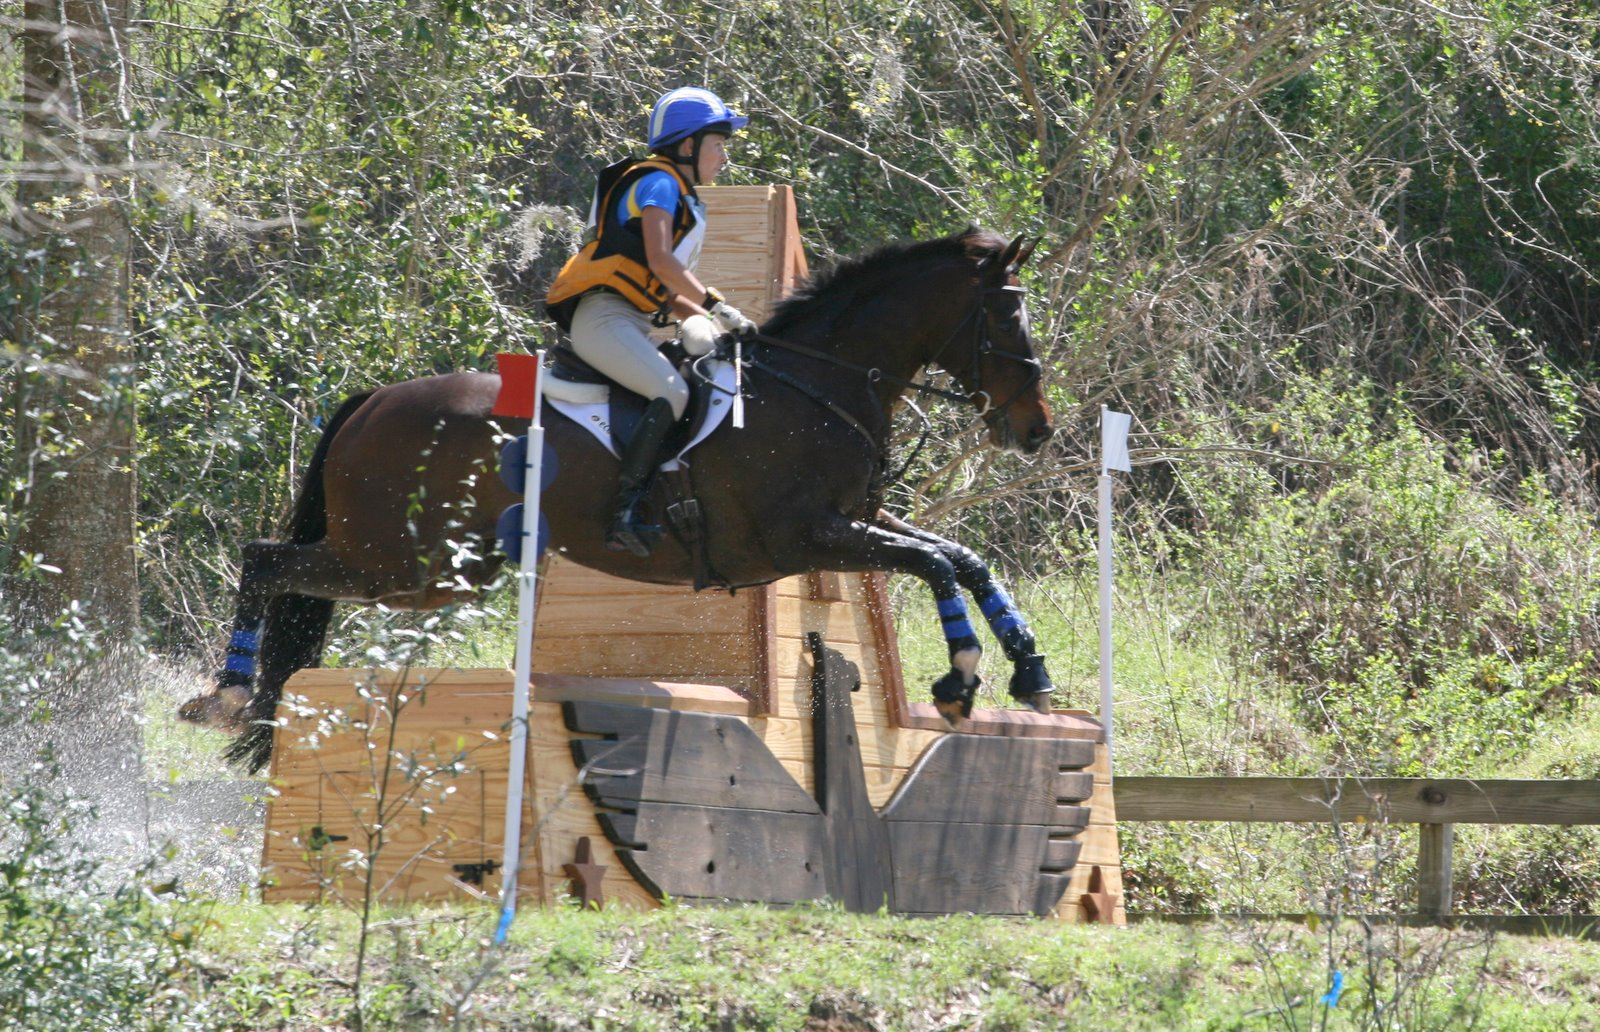 Horses jumping cross country - photo#20